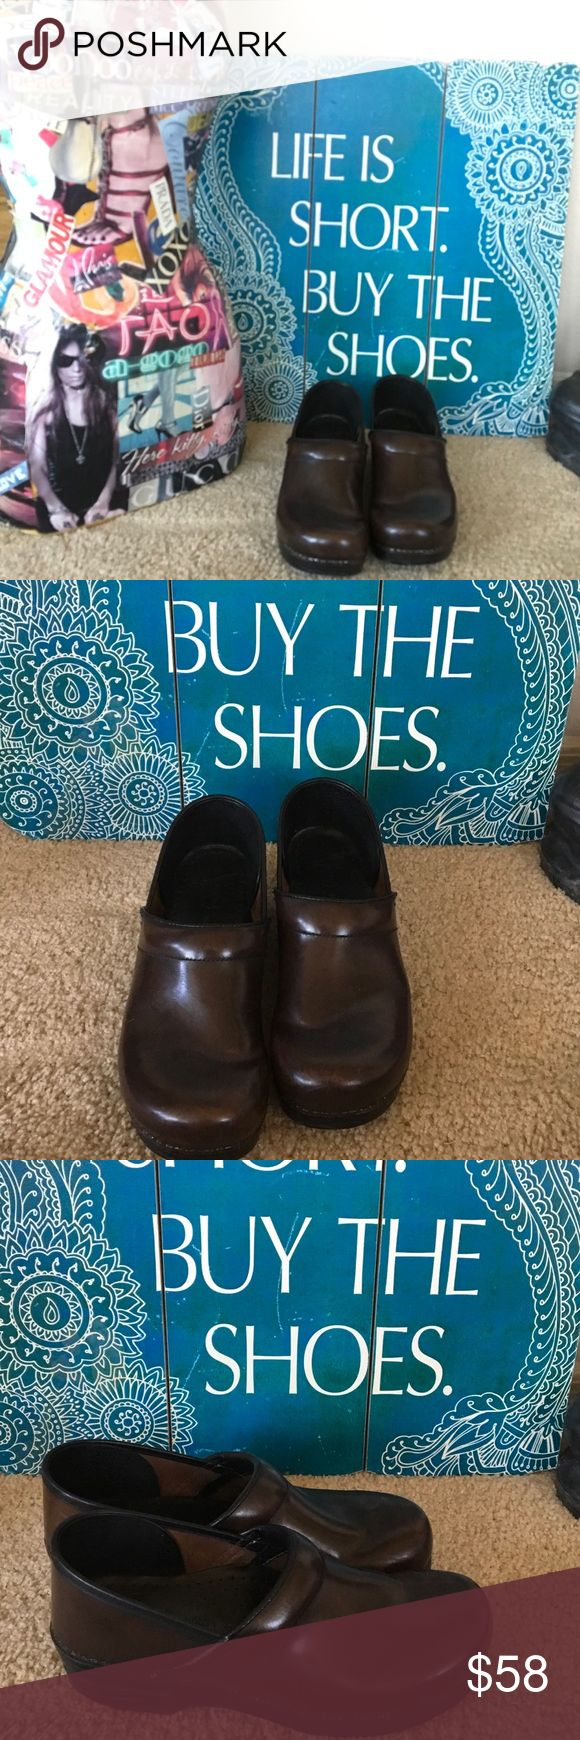 DANSKO Slip on CLOGS BROWN Support & Ultra Comfort LIKE NEW Excellent leather solid dark espresso brown leather w rubberized cushioned support. DANSKO is known for ultimate comfort & support for chefs, beauticians, nurses, sales,anyone on their feet all day. SIZE 41 M. Dansko Shoes Mules & Clogs